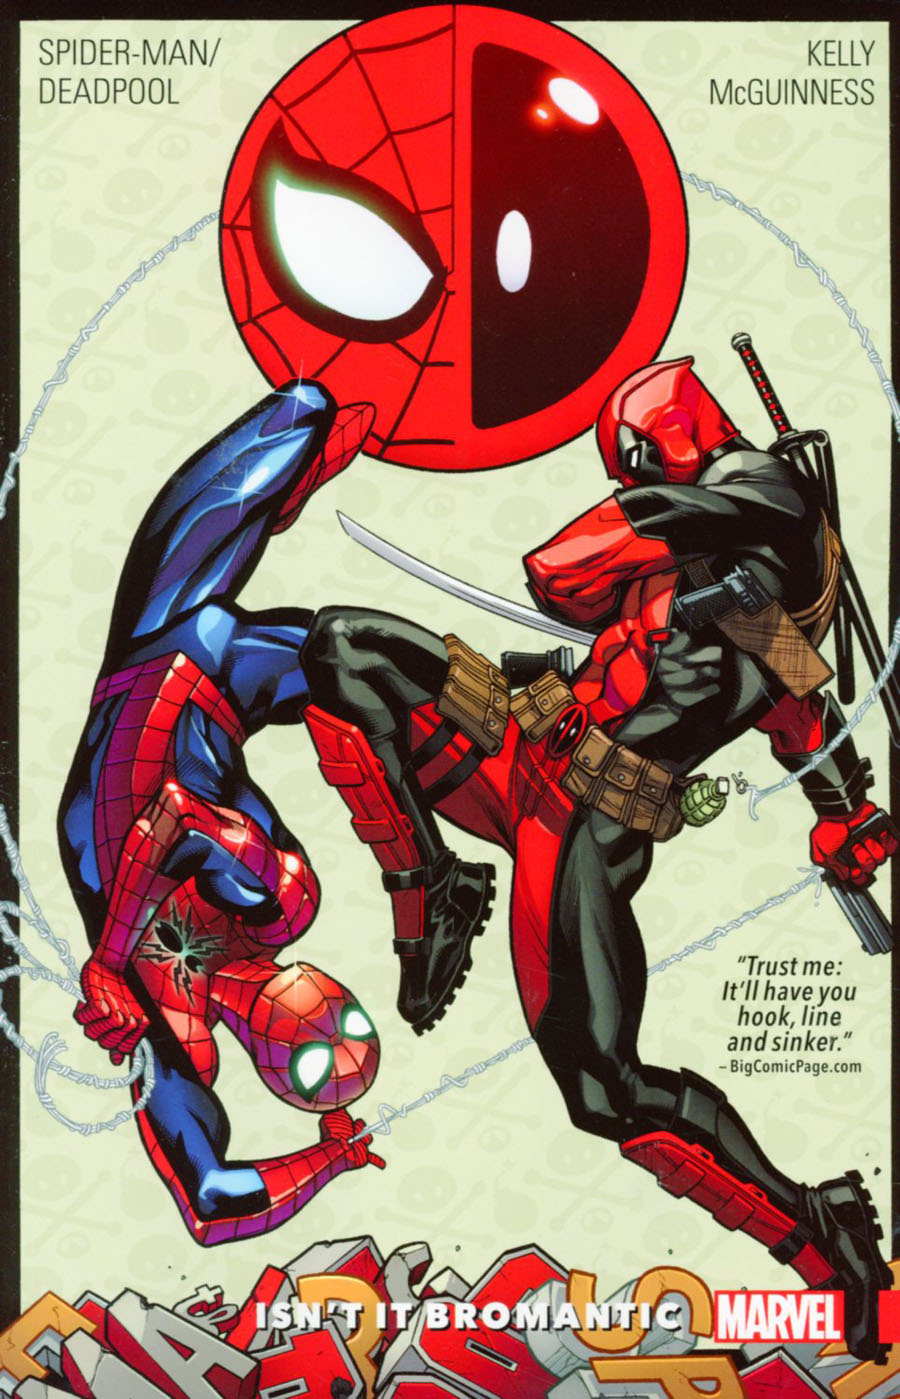 Spider-Man Deadpool Vol 1 Isnt It Bromantic TP